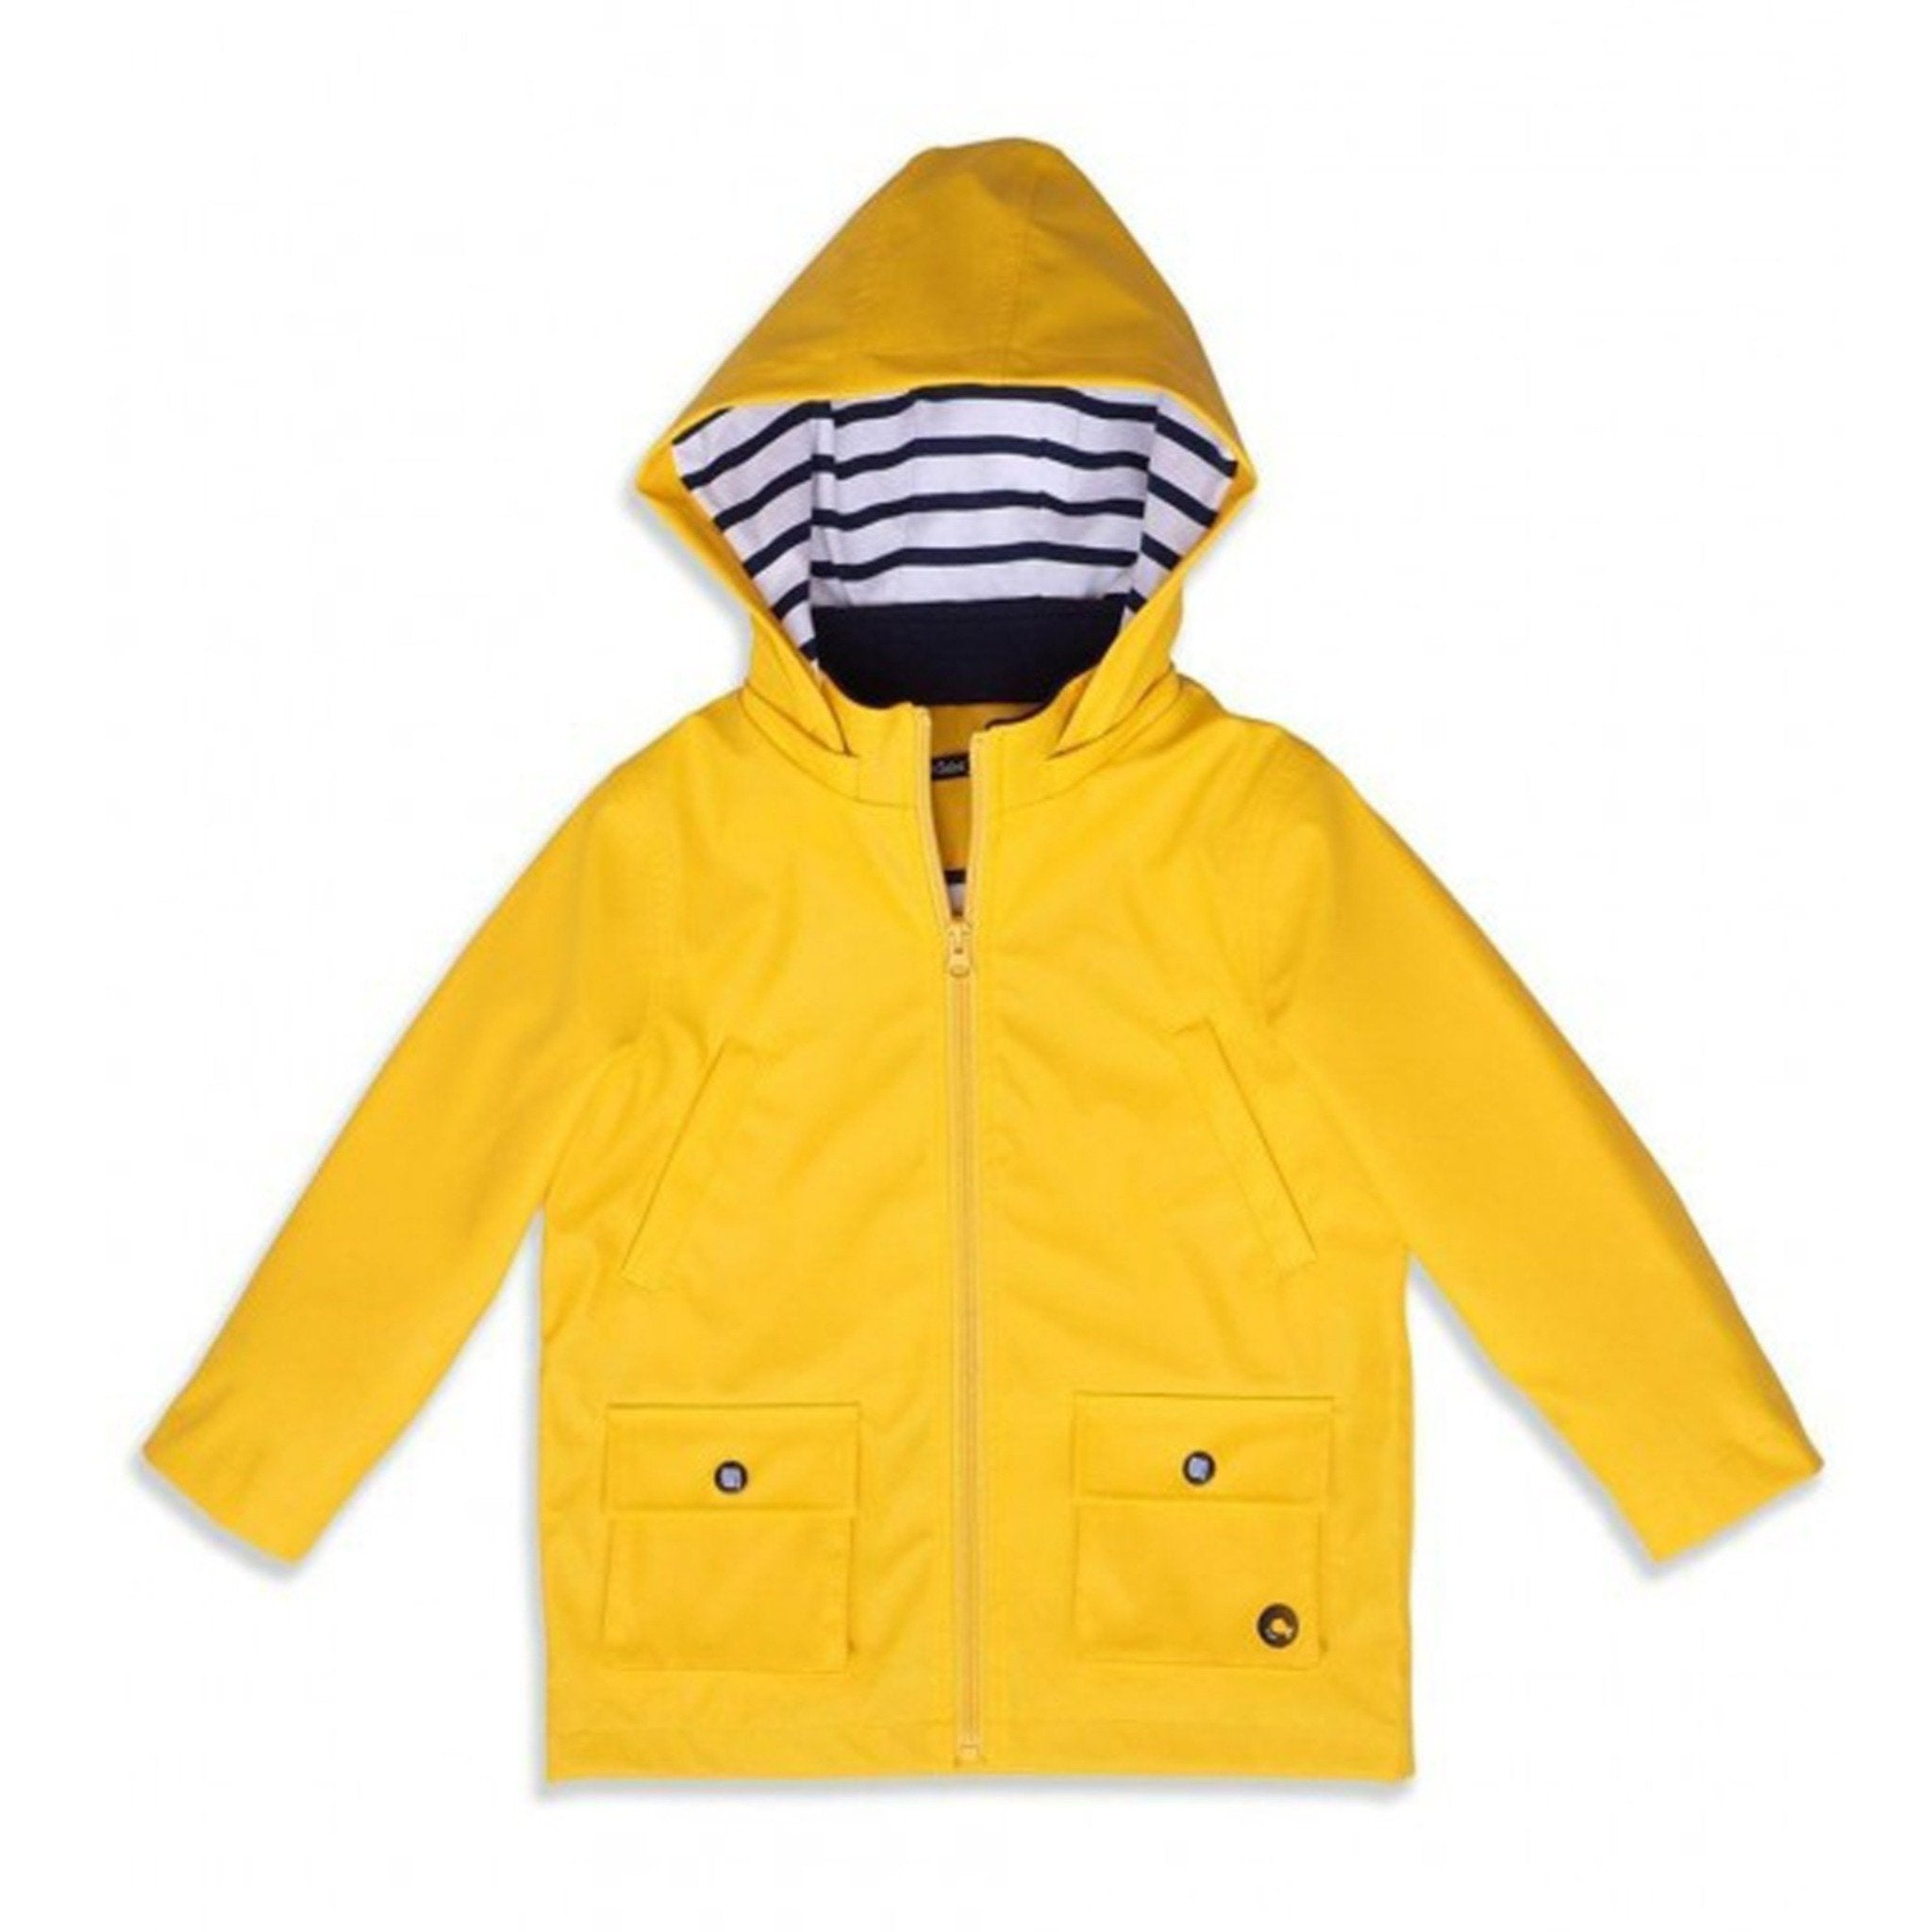 Saint James Childrens' Pacifique Rainproof Parka - Arthur Beale